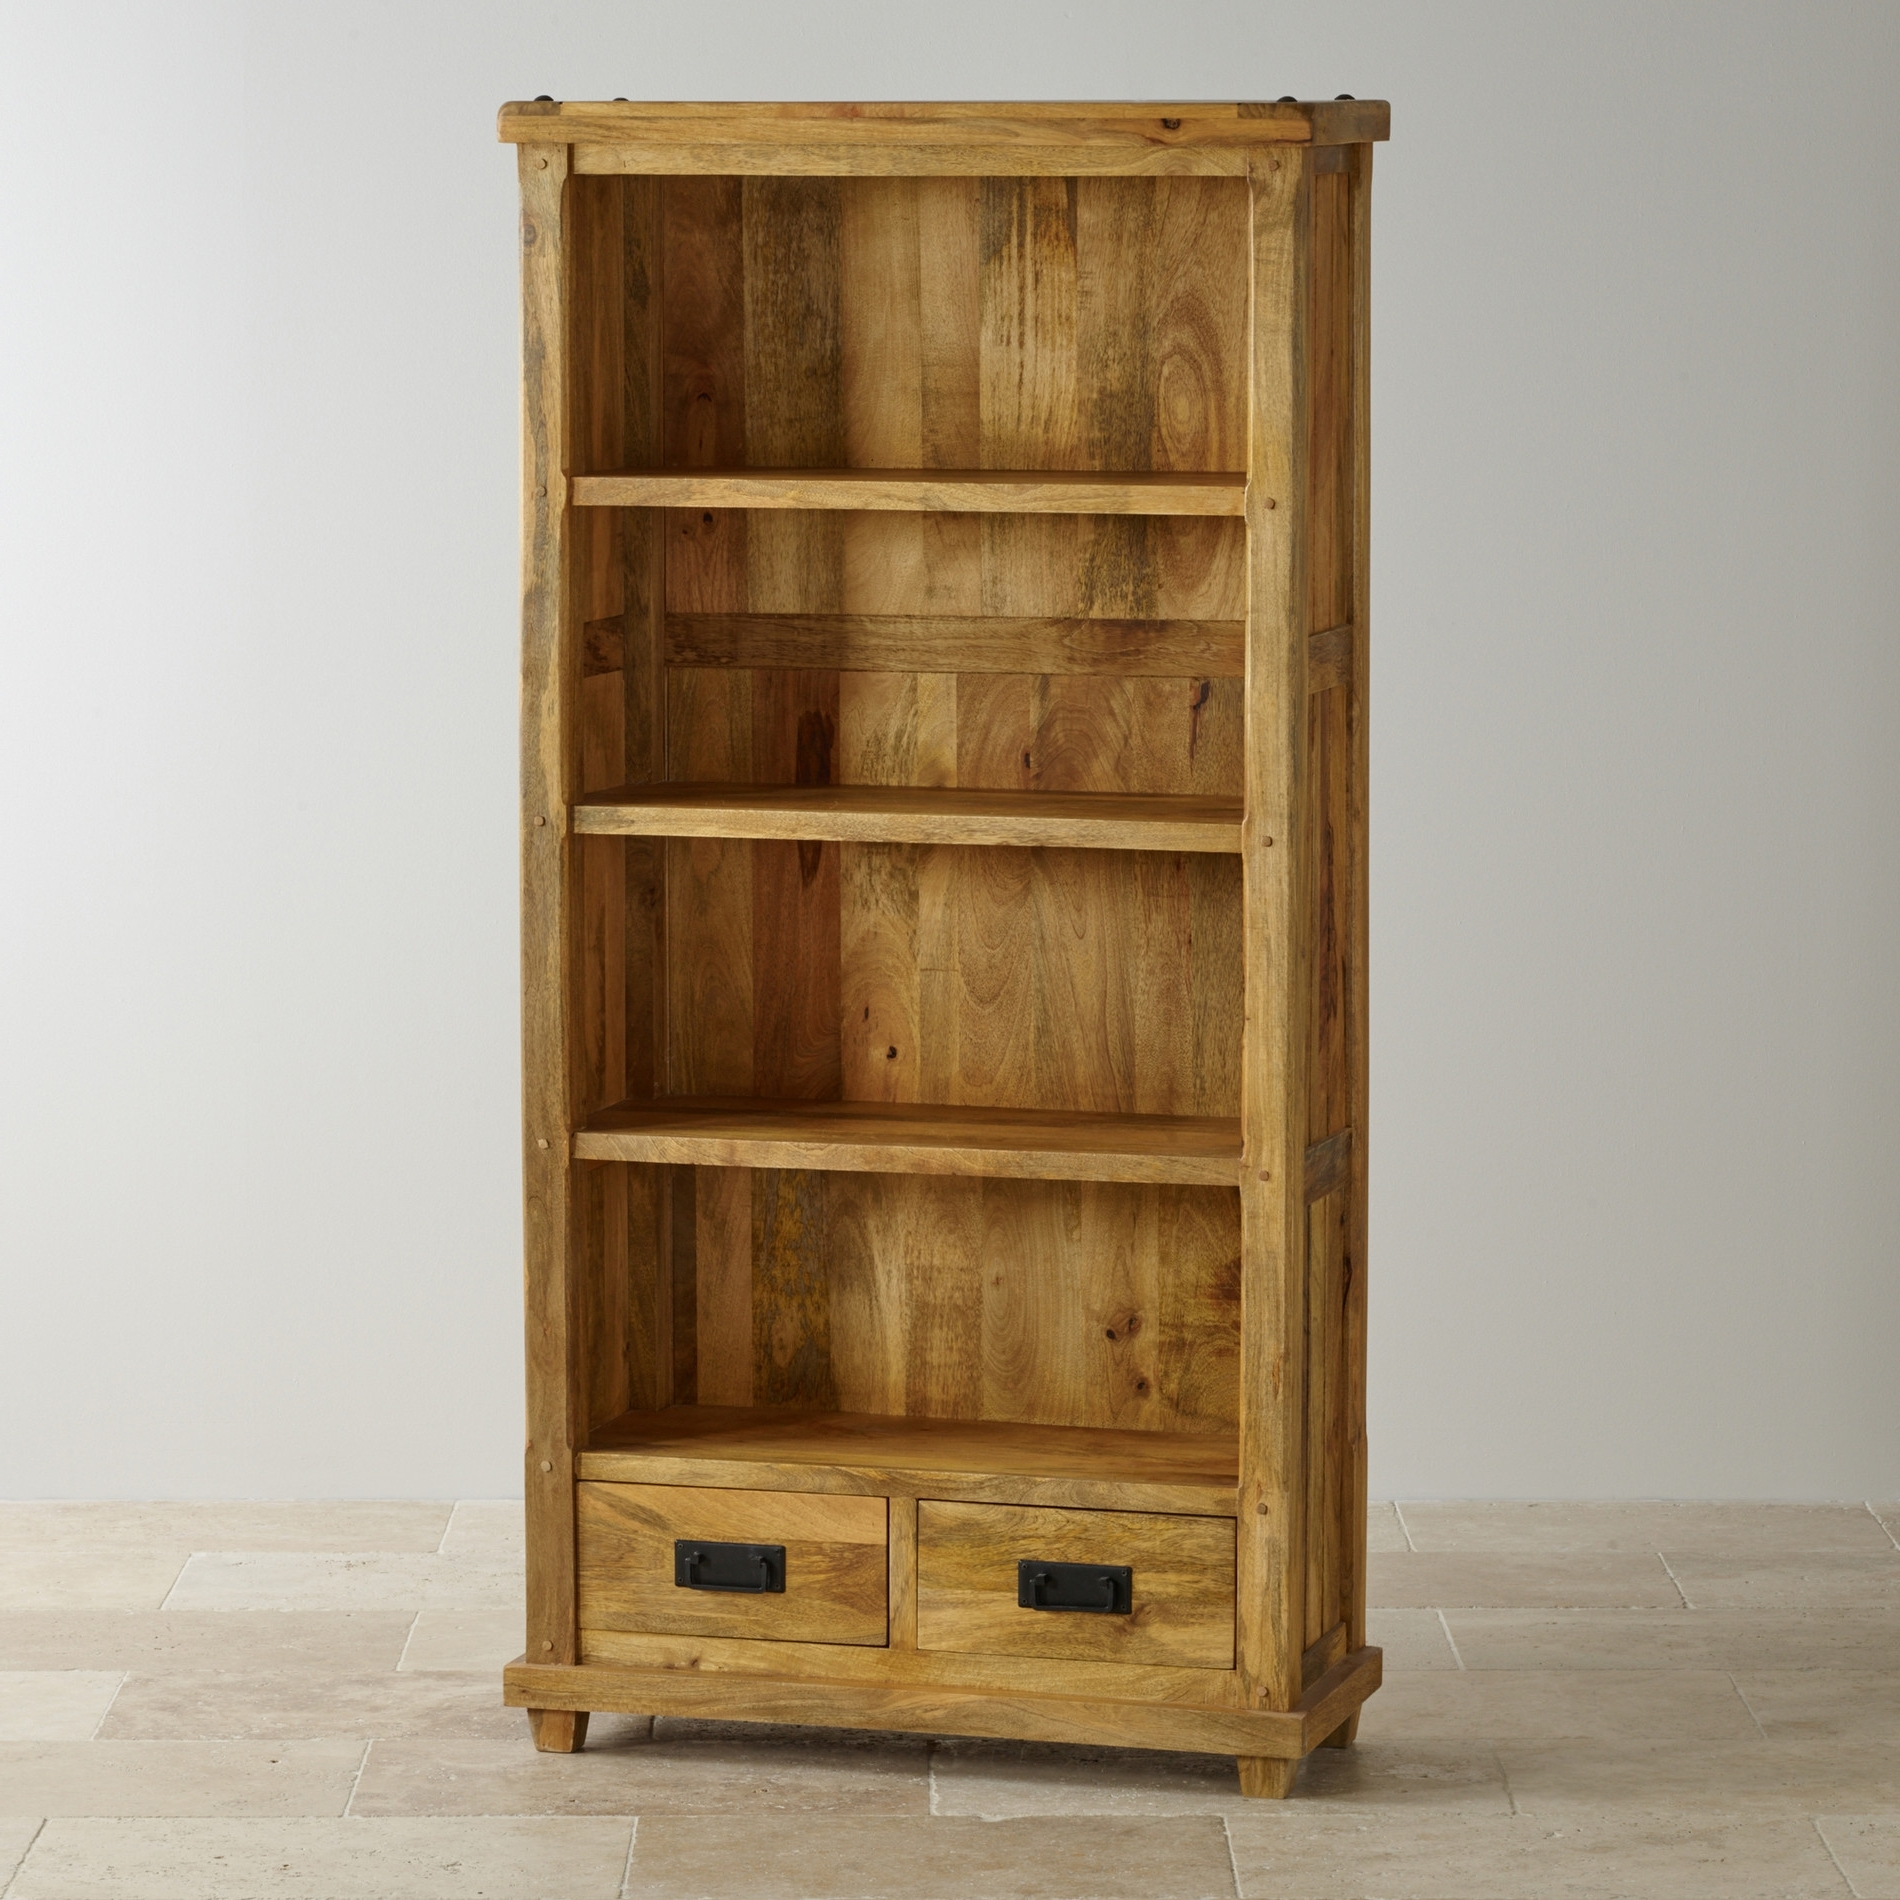 Newest Bookcases With Drawers On Bottom Pertaining To Bookshelf With Drawers On Bottom • Drawer Ideas (View 11 of 15)